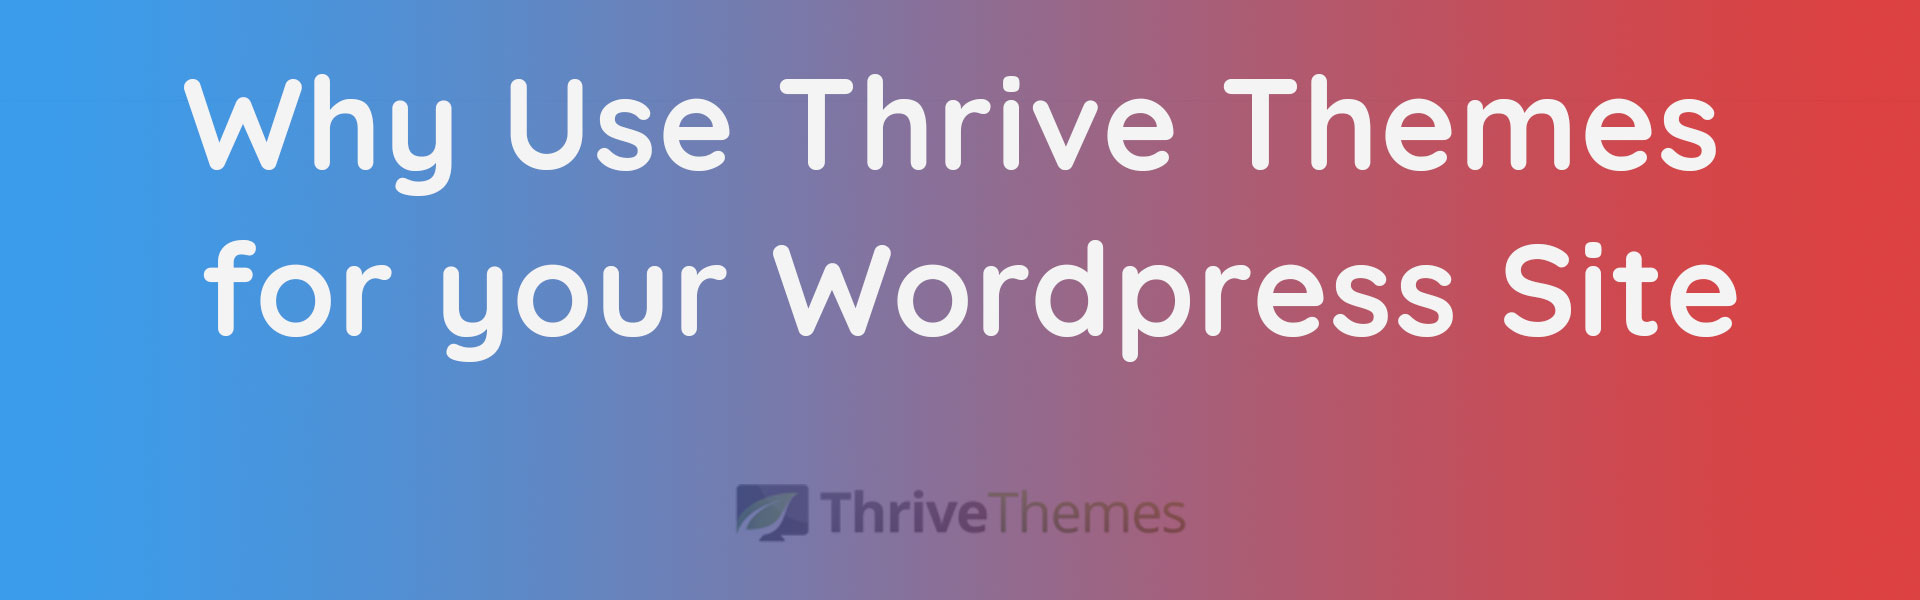 WordPress Themes Thrive Themes Used Ebay